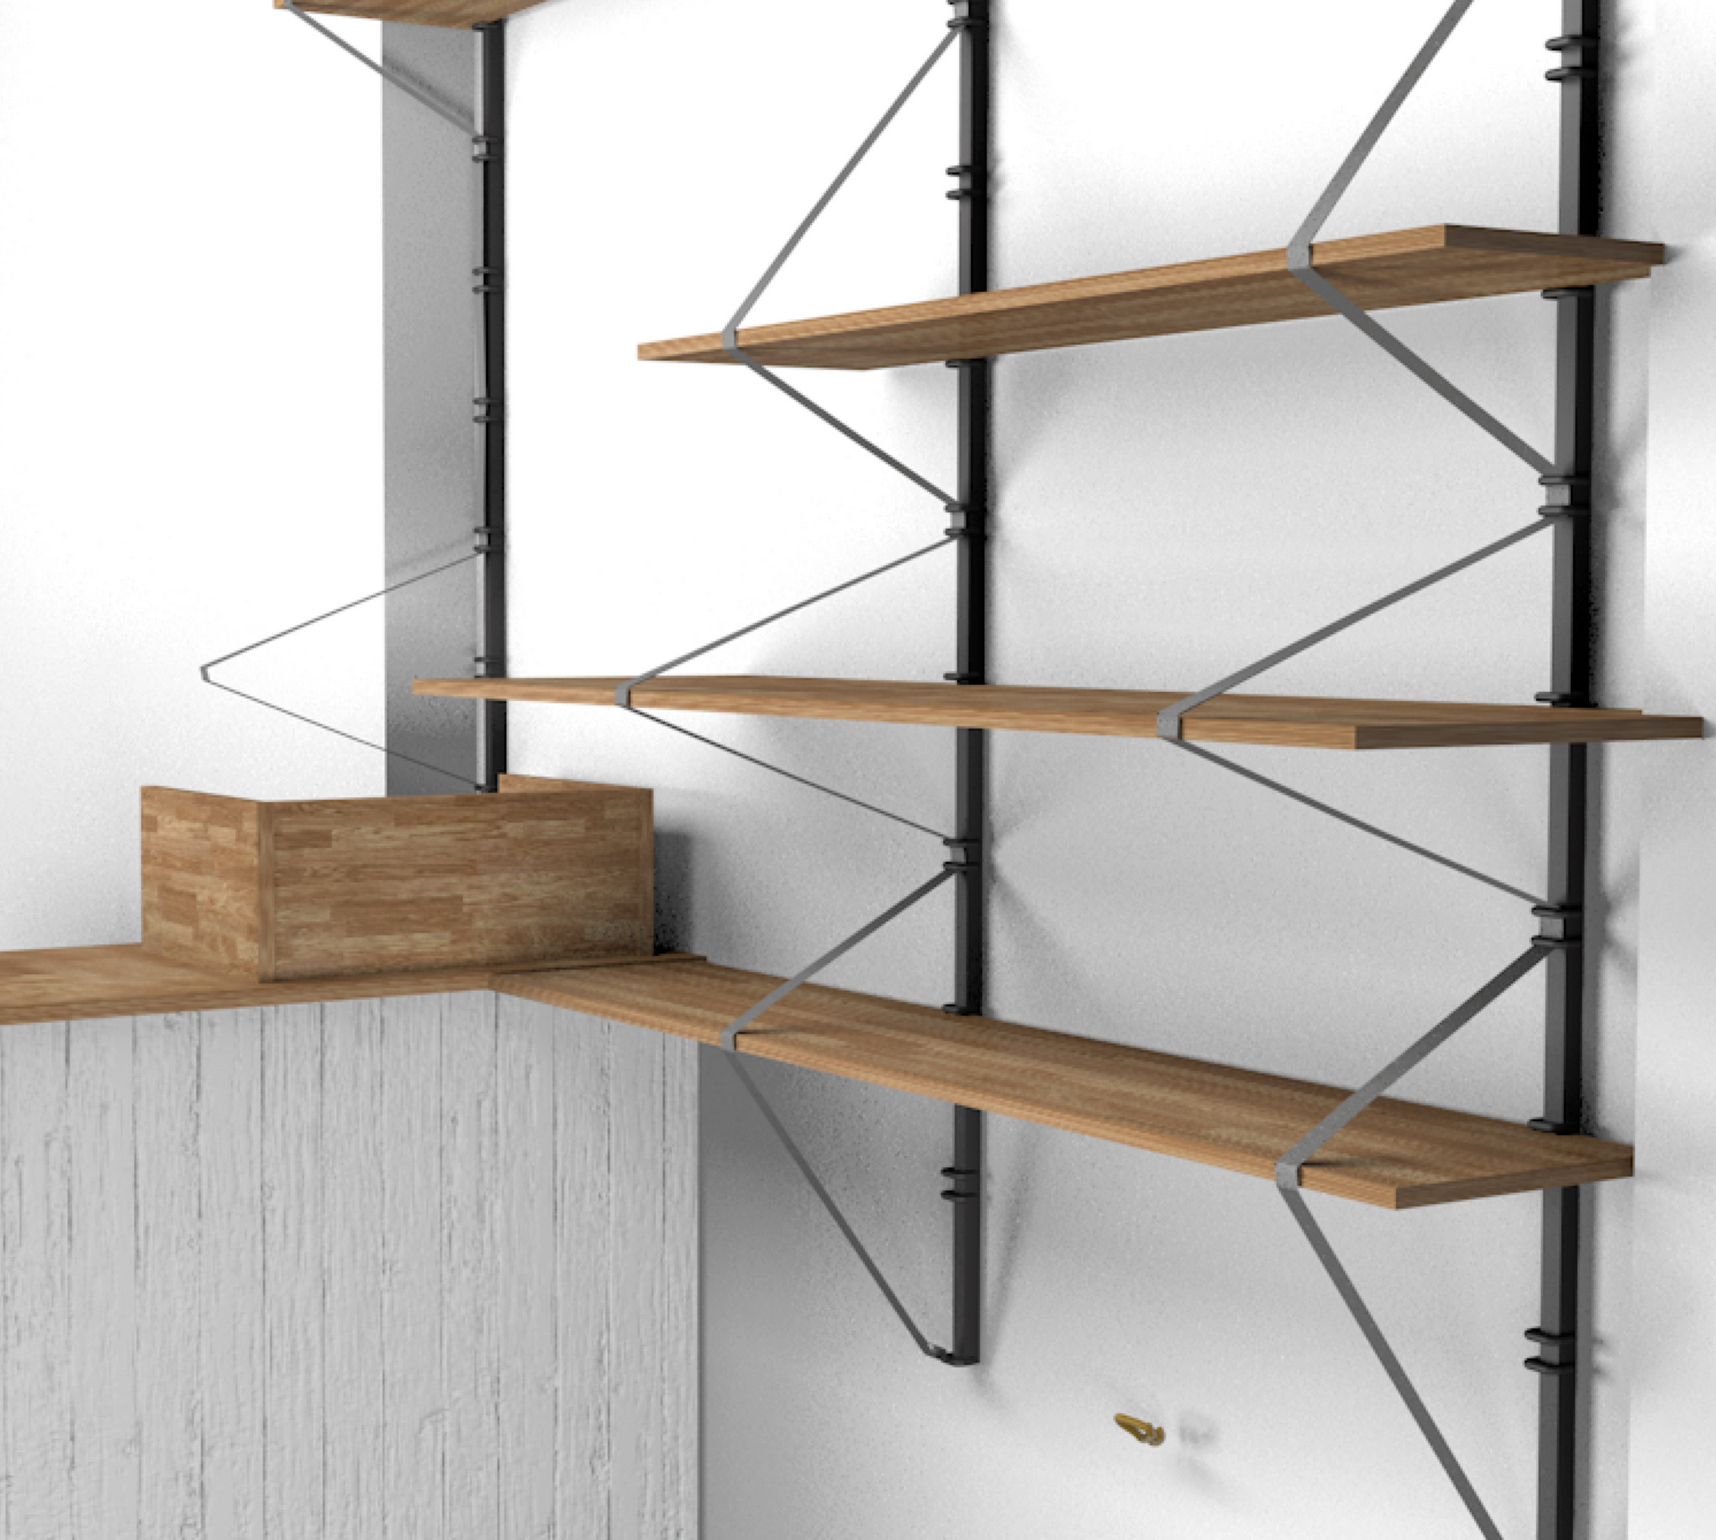 C4D render of ratchet strap shelves